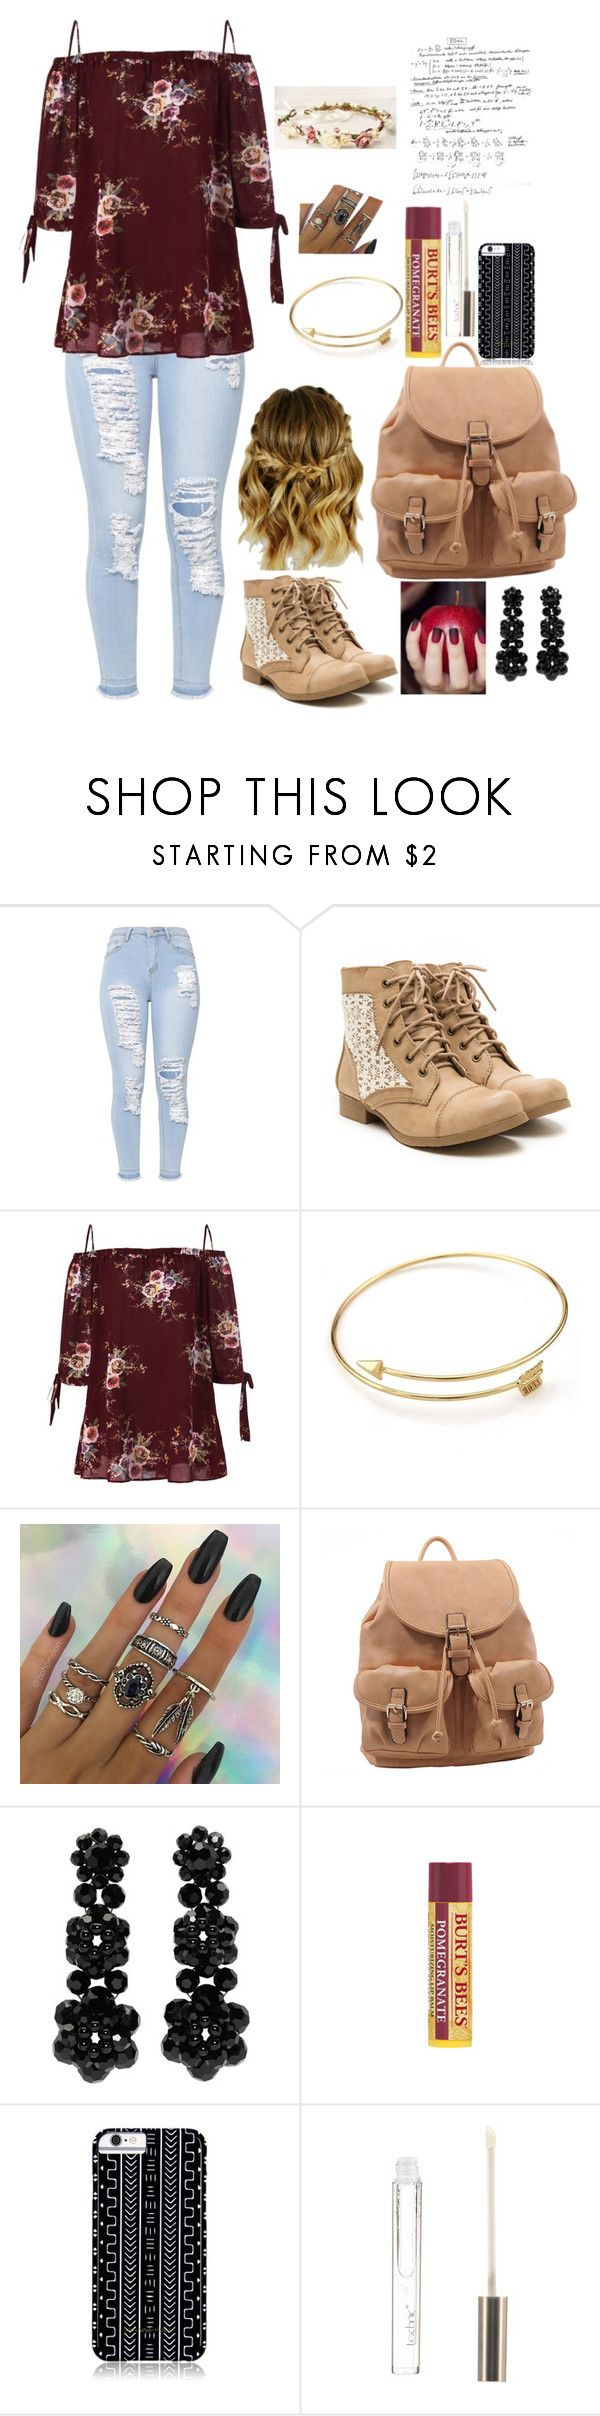 """How to rock combat boots at school"" by piano-fingers-88 ❤ liked on Polyvore featuring MKF Collection, Simone Rocha, Burt's Bees, Savannah Hayes and Boohoo"